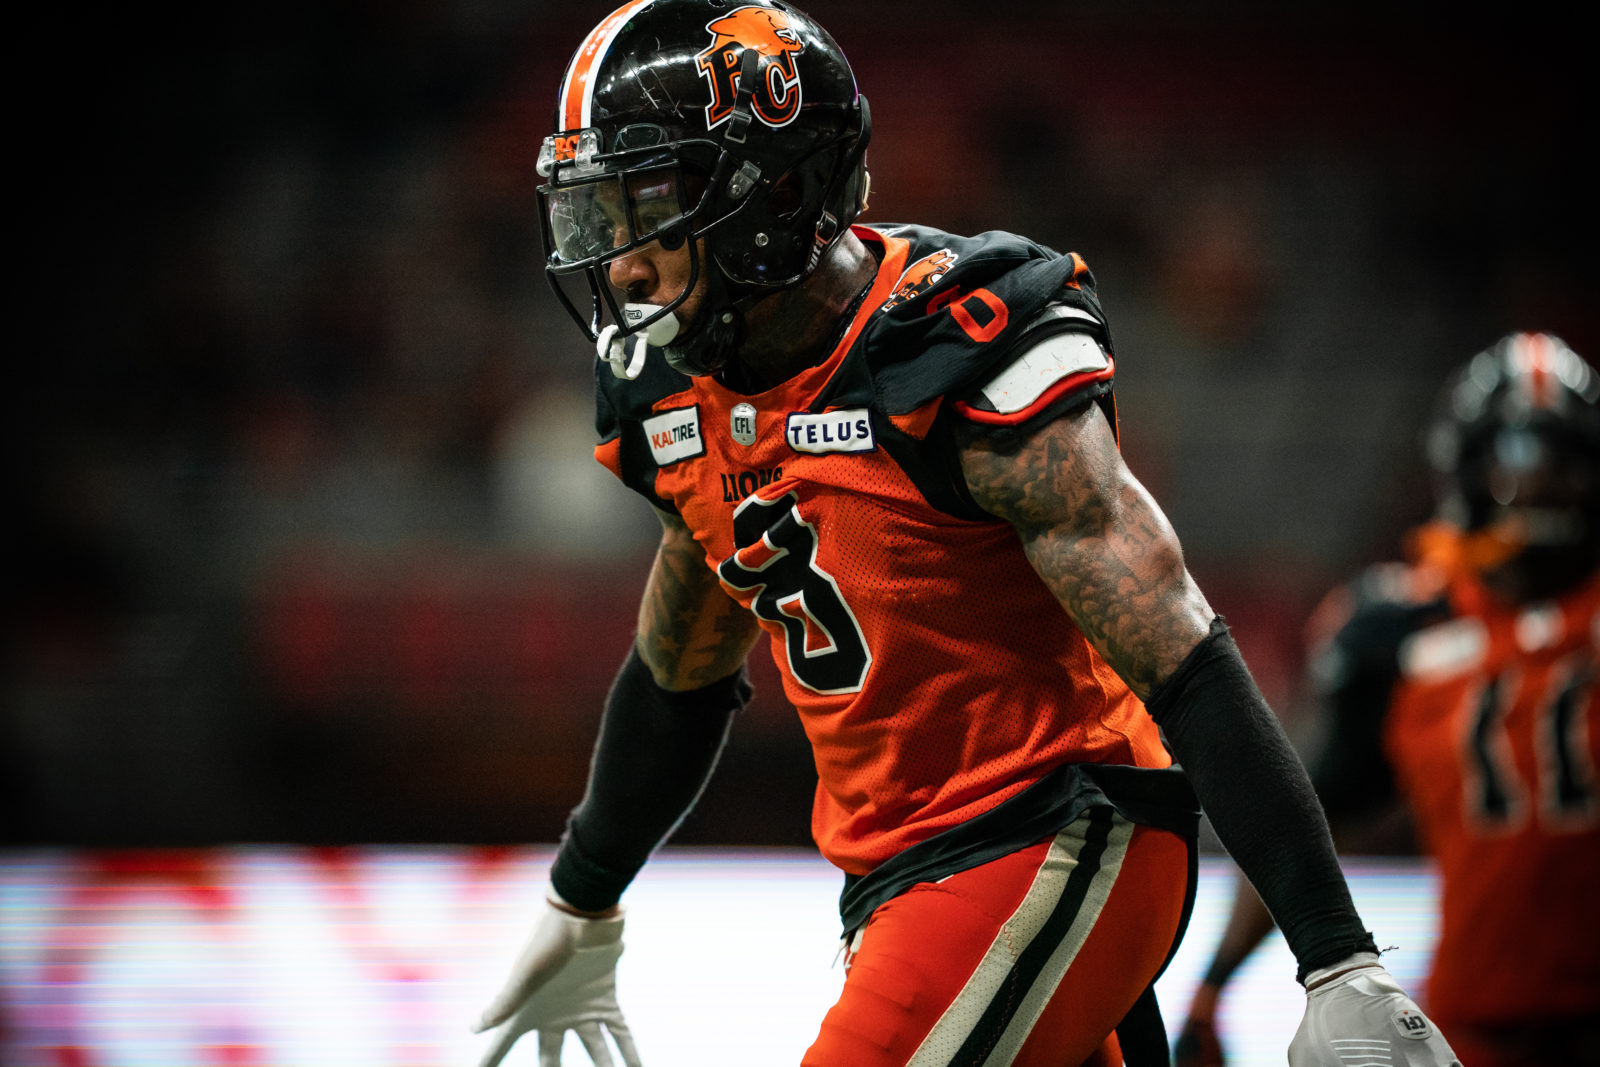 Newsome Ready For More In Old Stomping Grounds - BC Lions